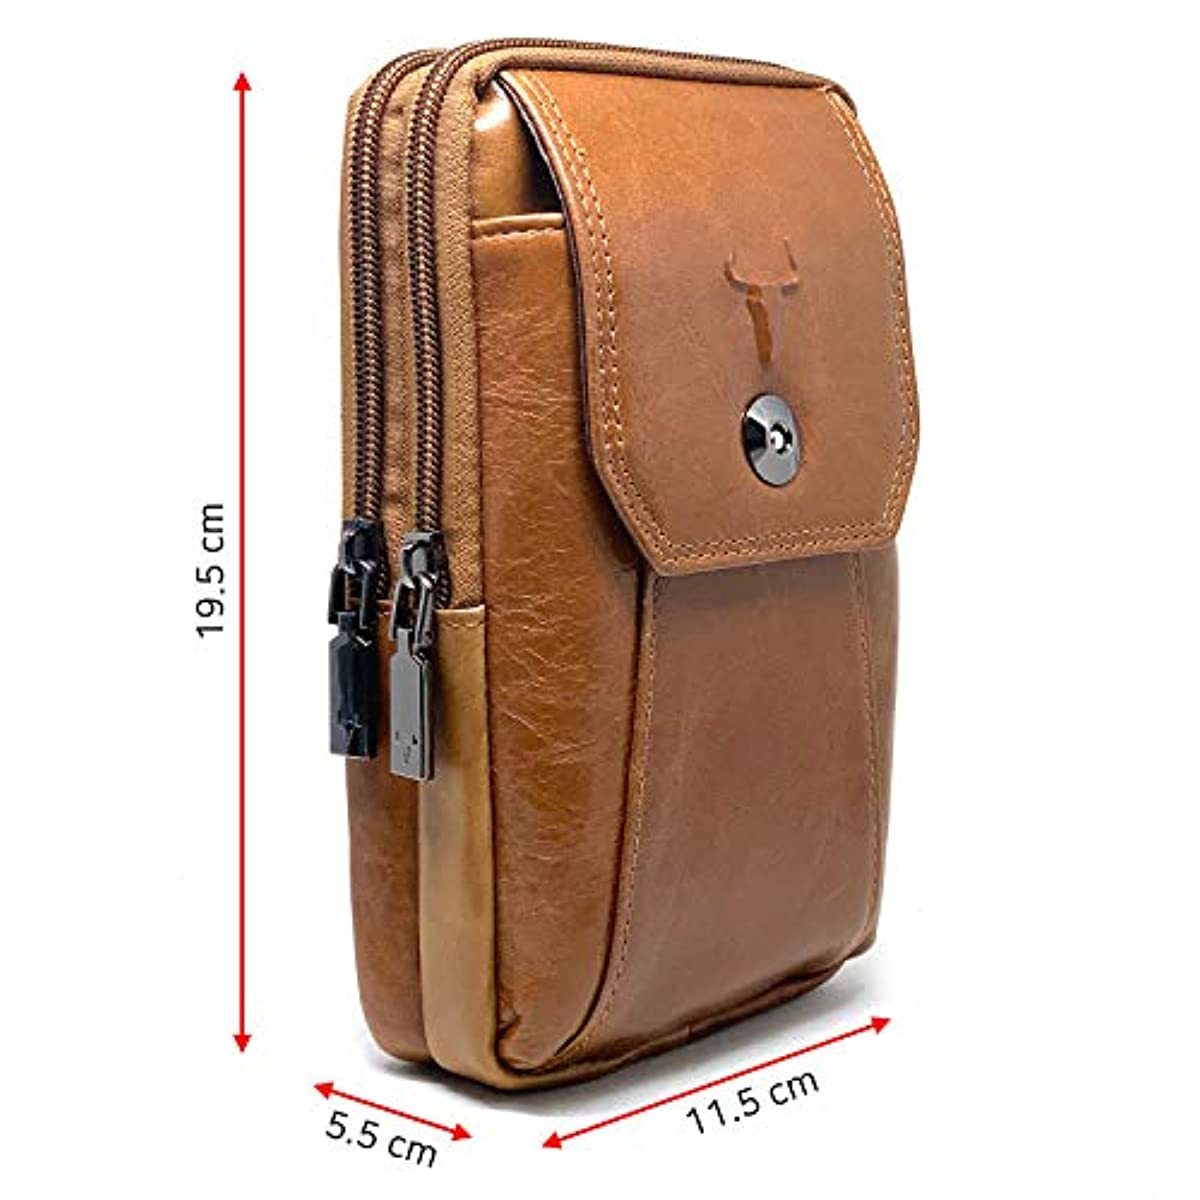 Phone purse iPhone 11 Pro Max Leather Cell phone Holster Case Belt Loop Pouch Travel Messenger Bag Brown 2353 - ENCACC